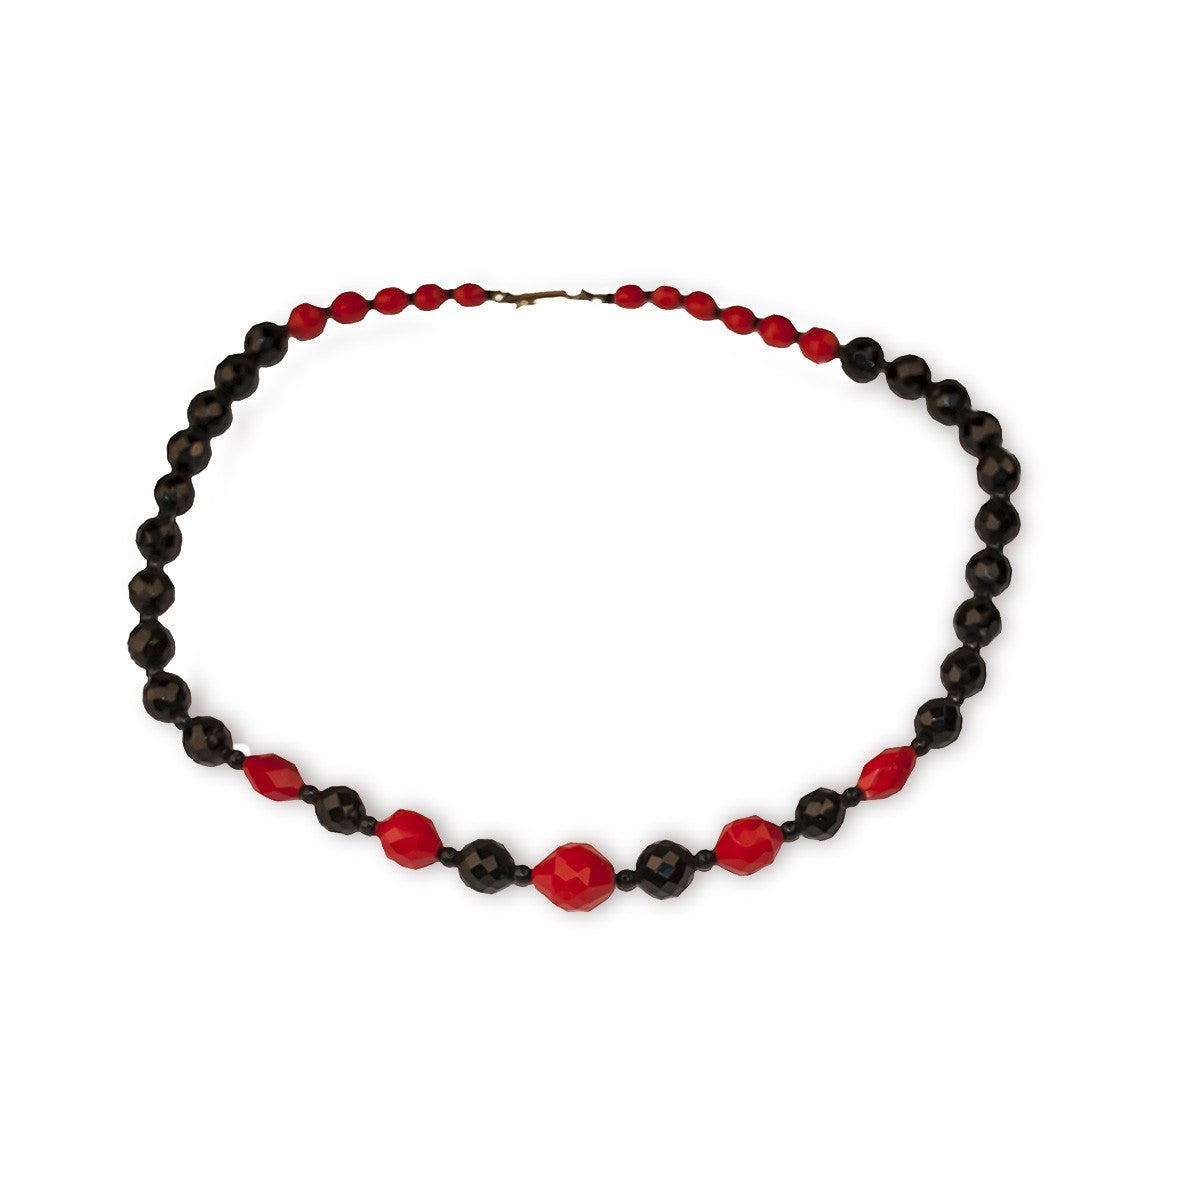 1950s Red & Black Glass Bead Necklace, 24